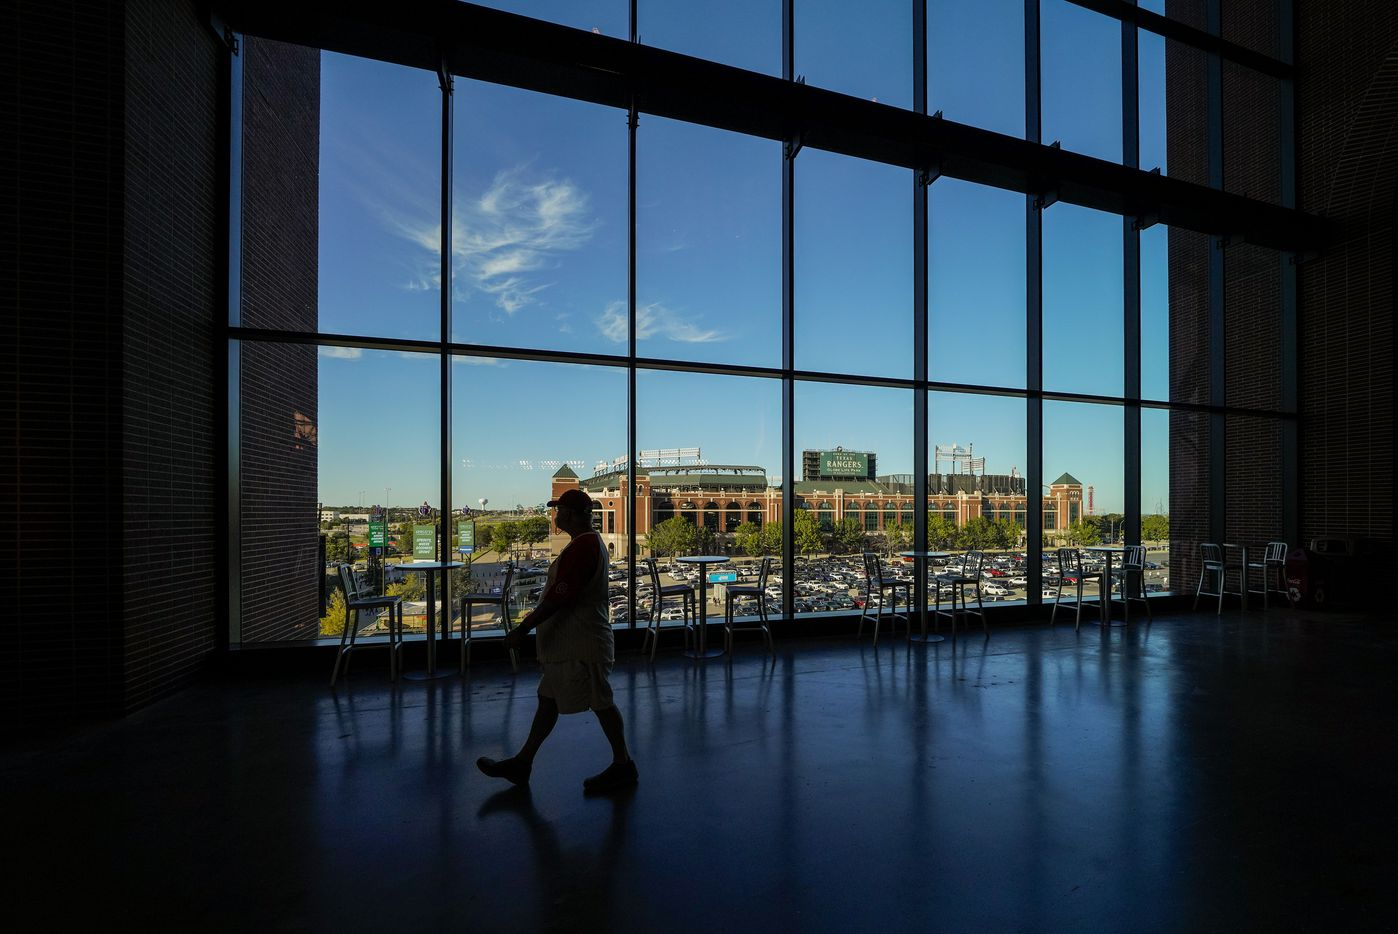 The old Globe Life Park, the former open-roofed home of the Texas Rangers, is seen through windows on the upper concourse of the new Globe Life Field in Arlington, Texas.